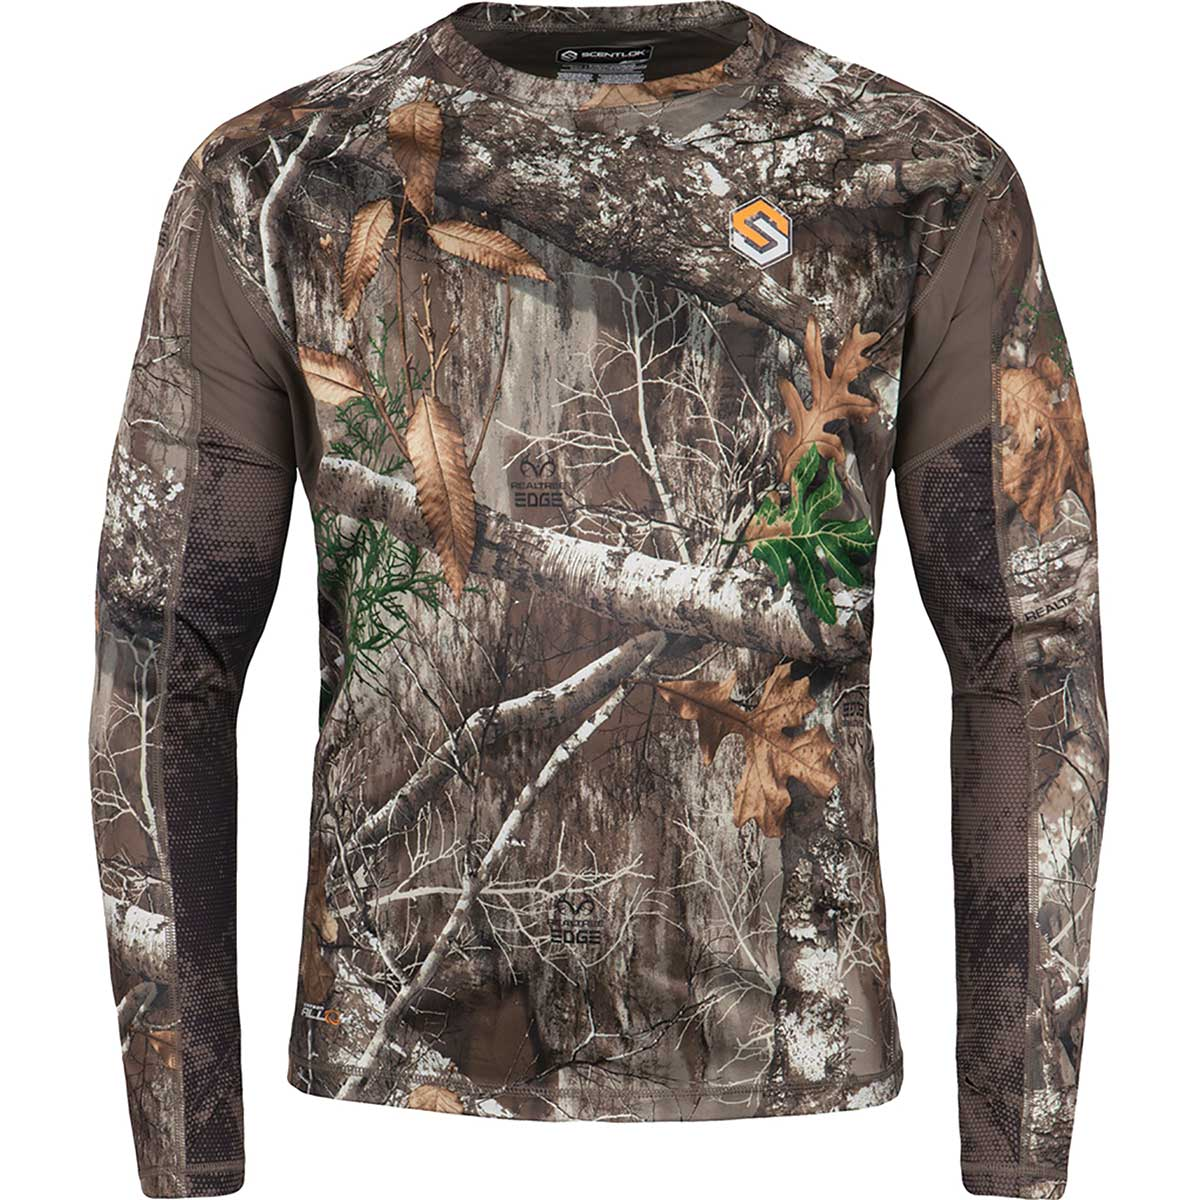 ScentLok AMP Realtree Edge Lightweight Top